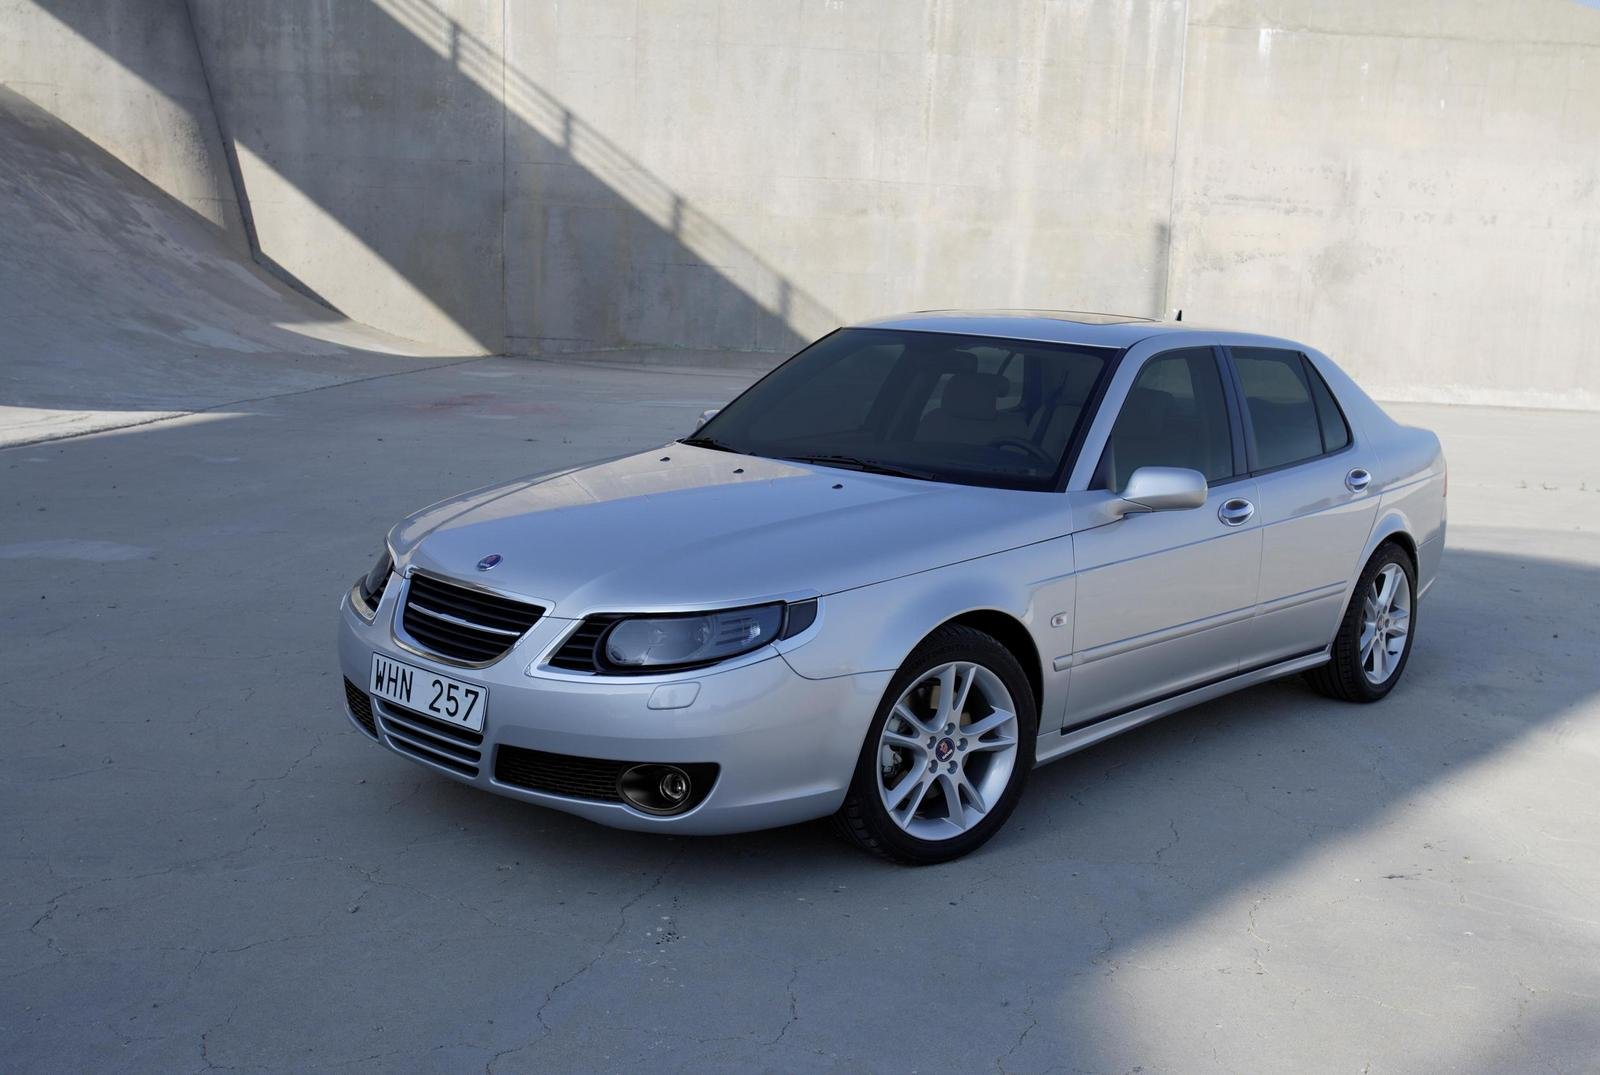 2007 saab 9 5 review top speed. Black Bedroom Furniture Sets. Home Design Ideas